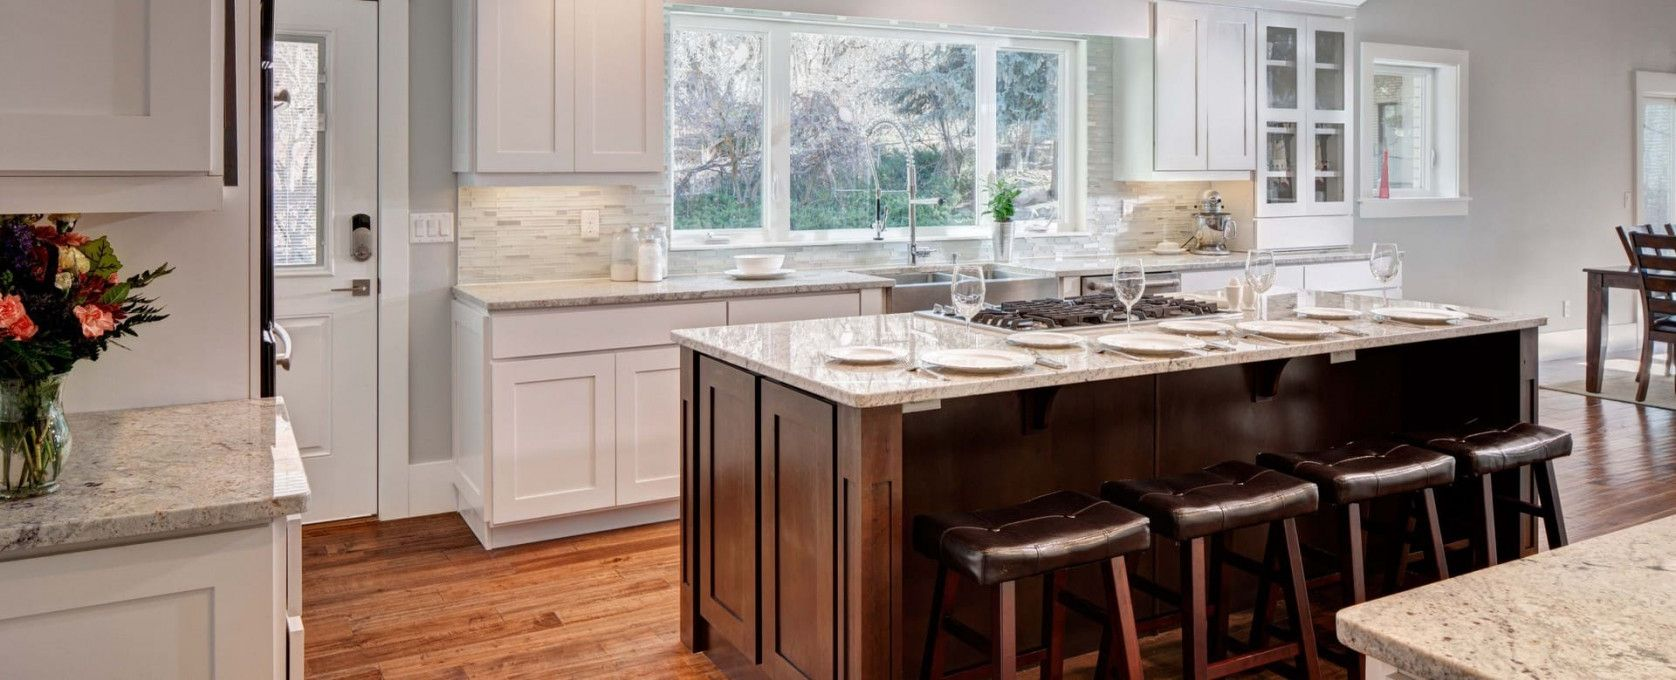 Genial 55+ Kitchen Cabinets Salt Lake City   Best Kitchen Cabinet Ideas Check More  At Http